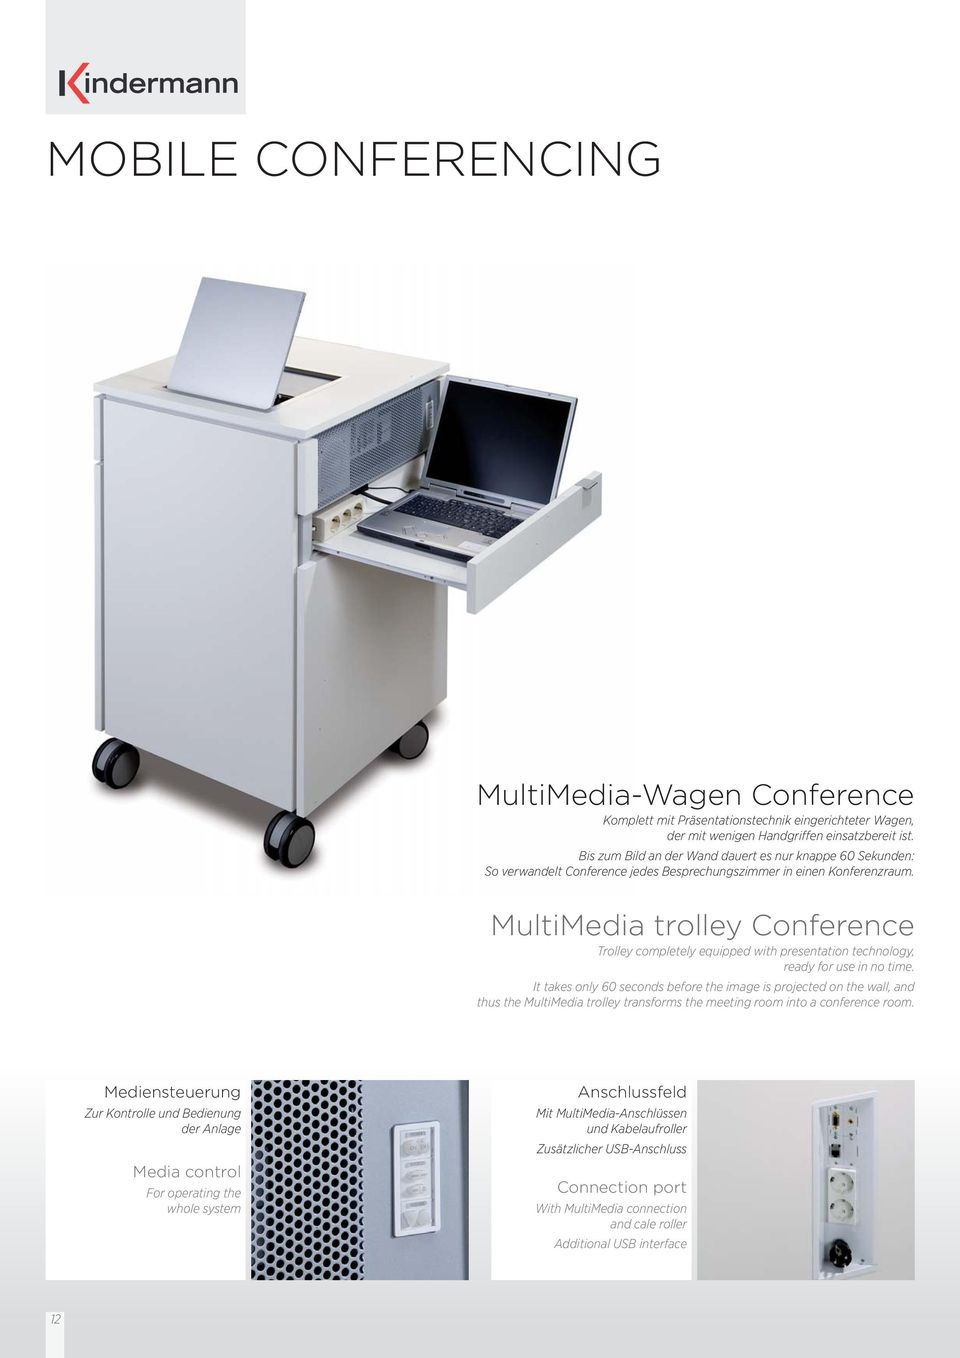 MultiMedia trolley Conference Trolley completely equipped with presentation technology, ready for use in no time.